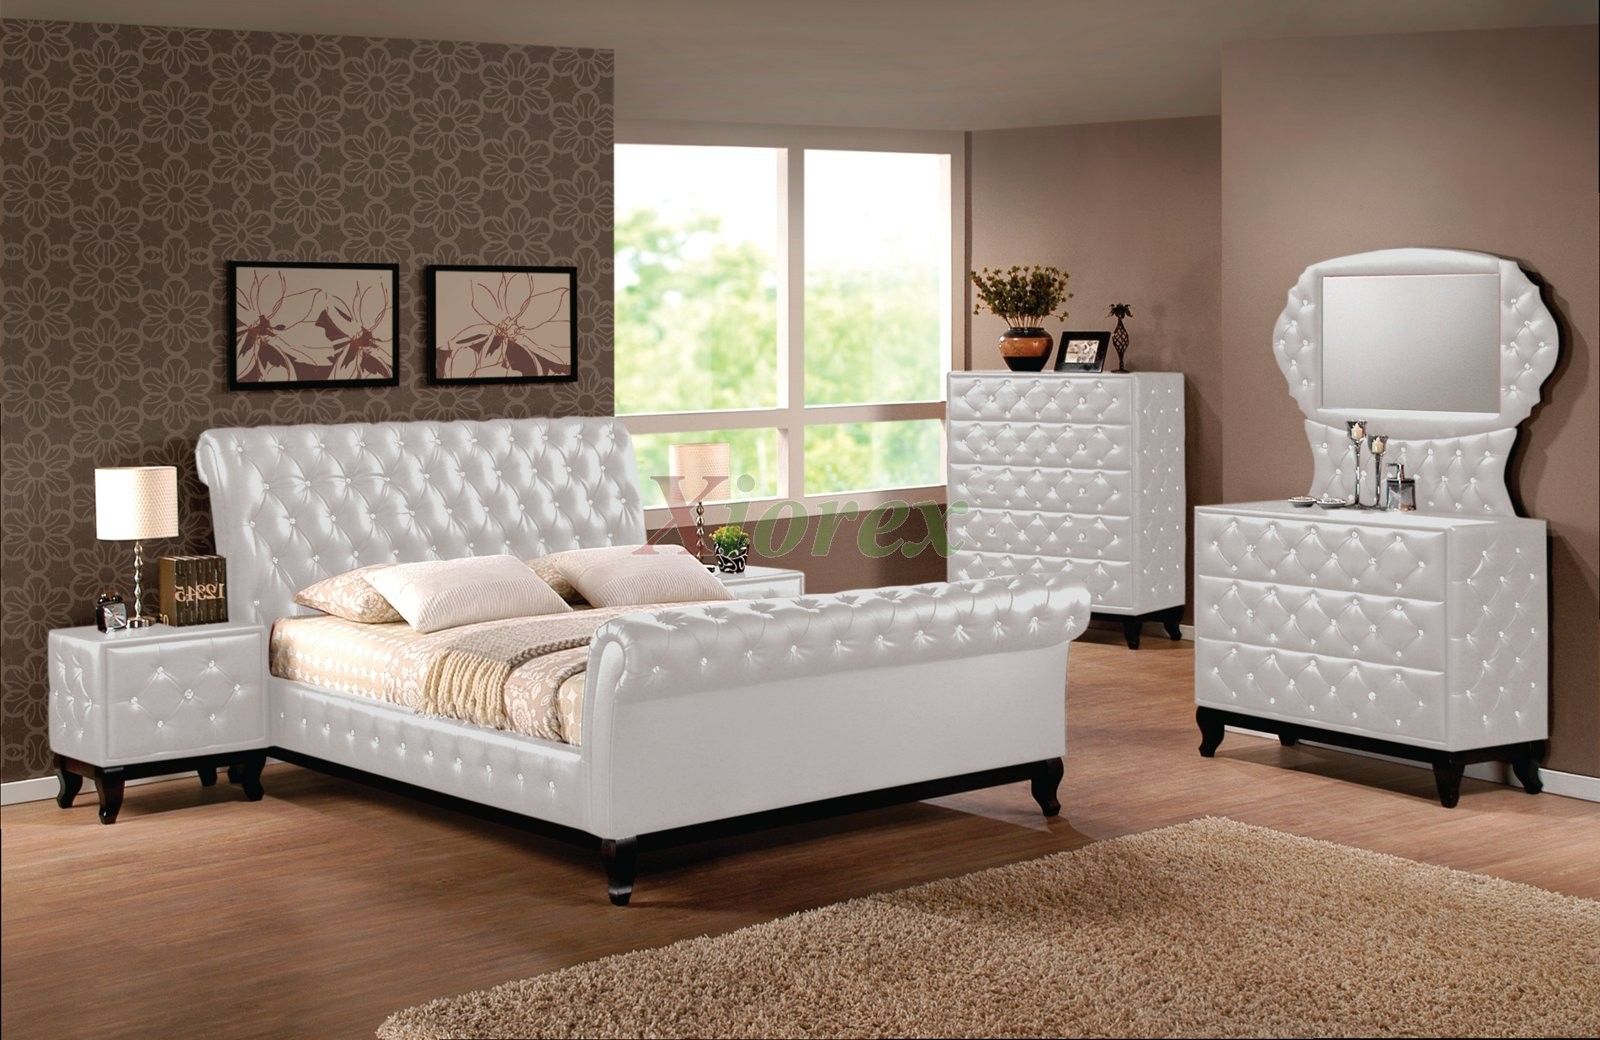 Impressive Bedroom Furniture Sets Sleigh Bed 1600 x 1040 · 334 kB · jpeg